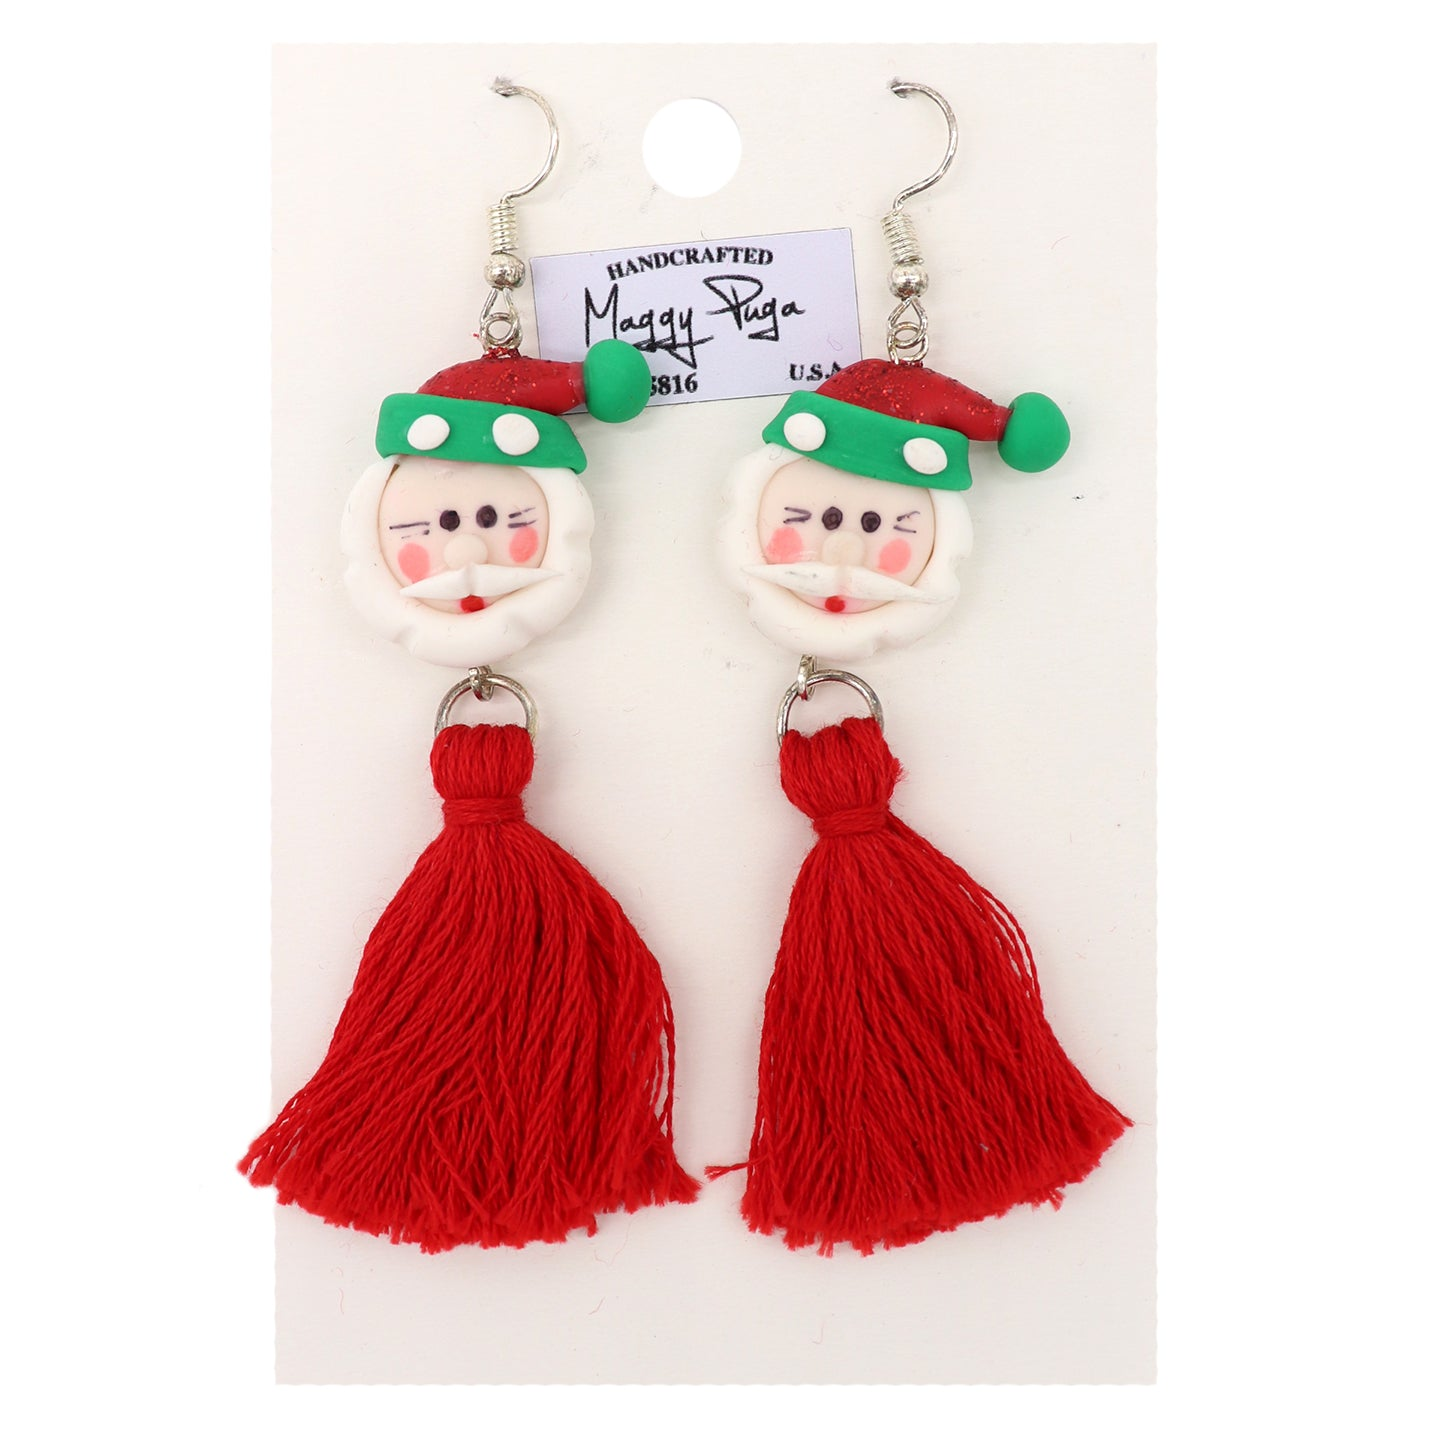 Christmas holiday earrings. Featuring Santa Claus with a red and green hat, white beard, blush cheeks , and red tassels. Handcrafted by small shop Maggy Puga and Sold by SDTrading Co.